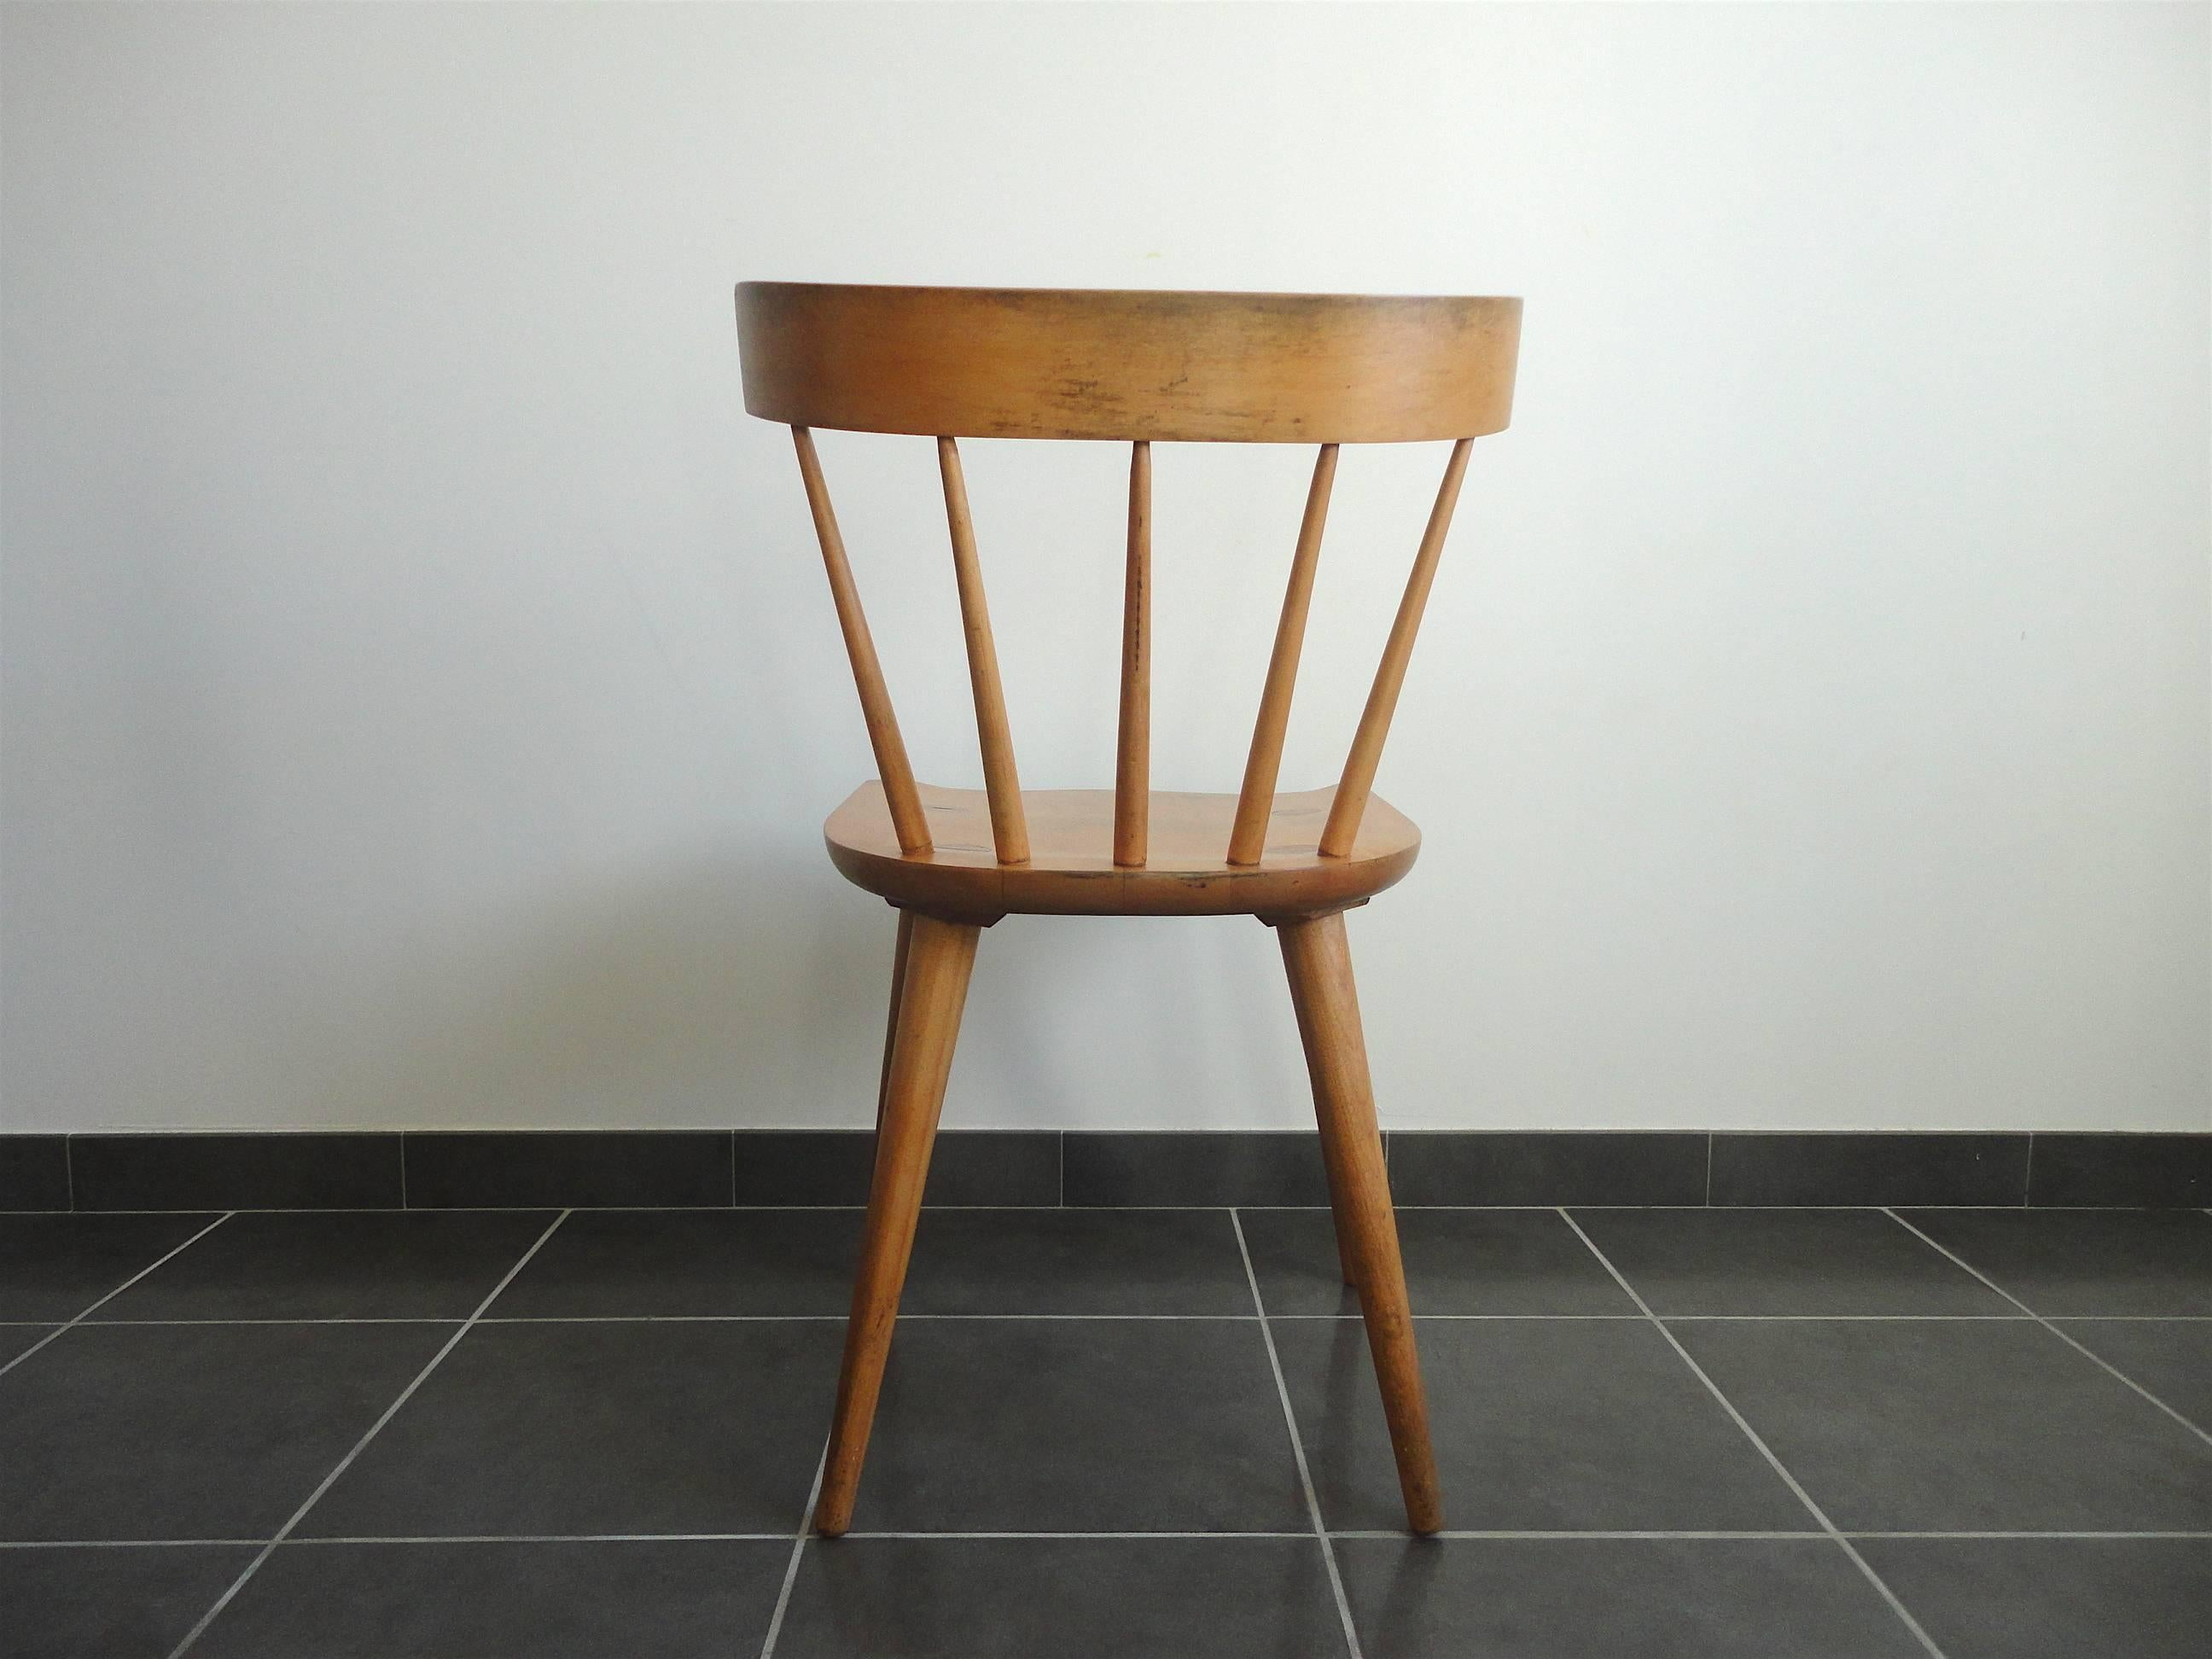 Paul Mccobb Chairs Spindle Back Planner Group Chair By Paul Mccobb For Winchendon 1950s